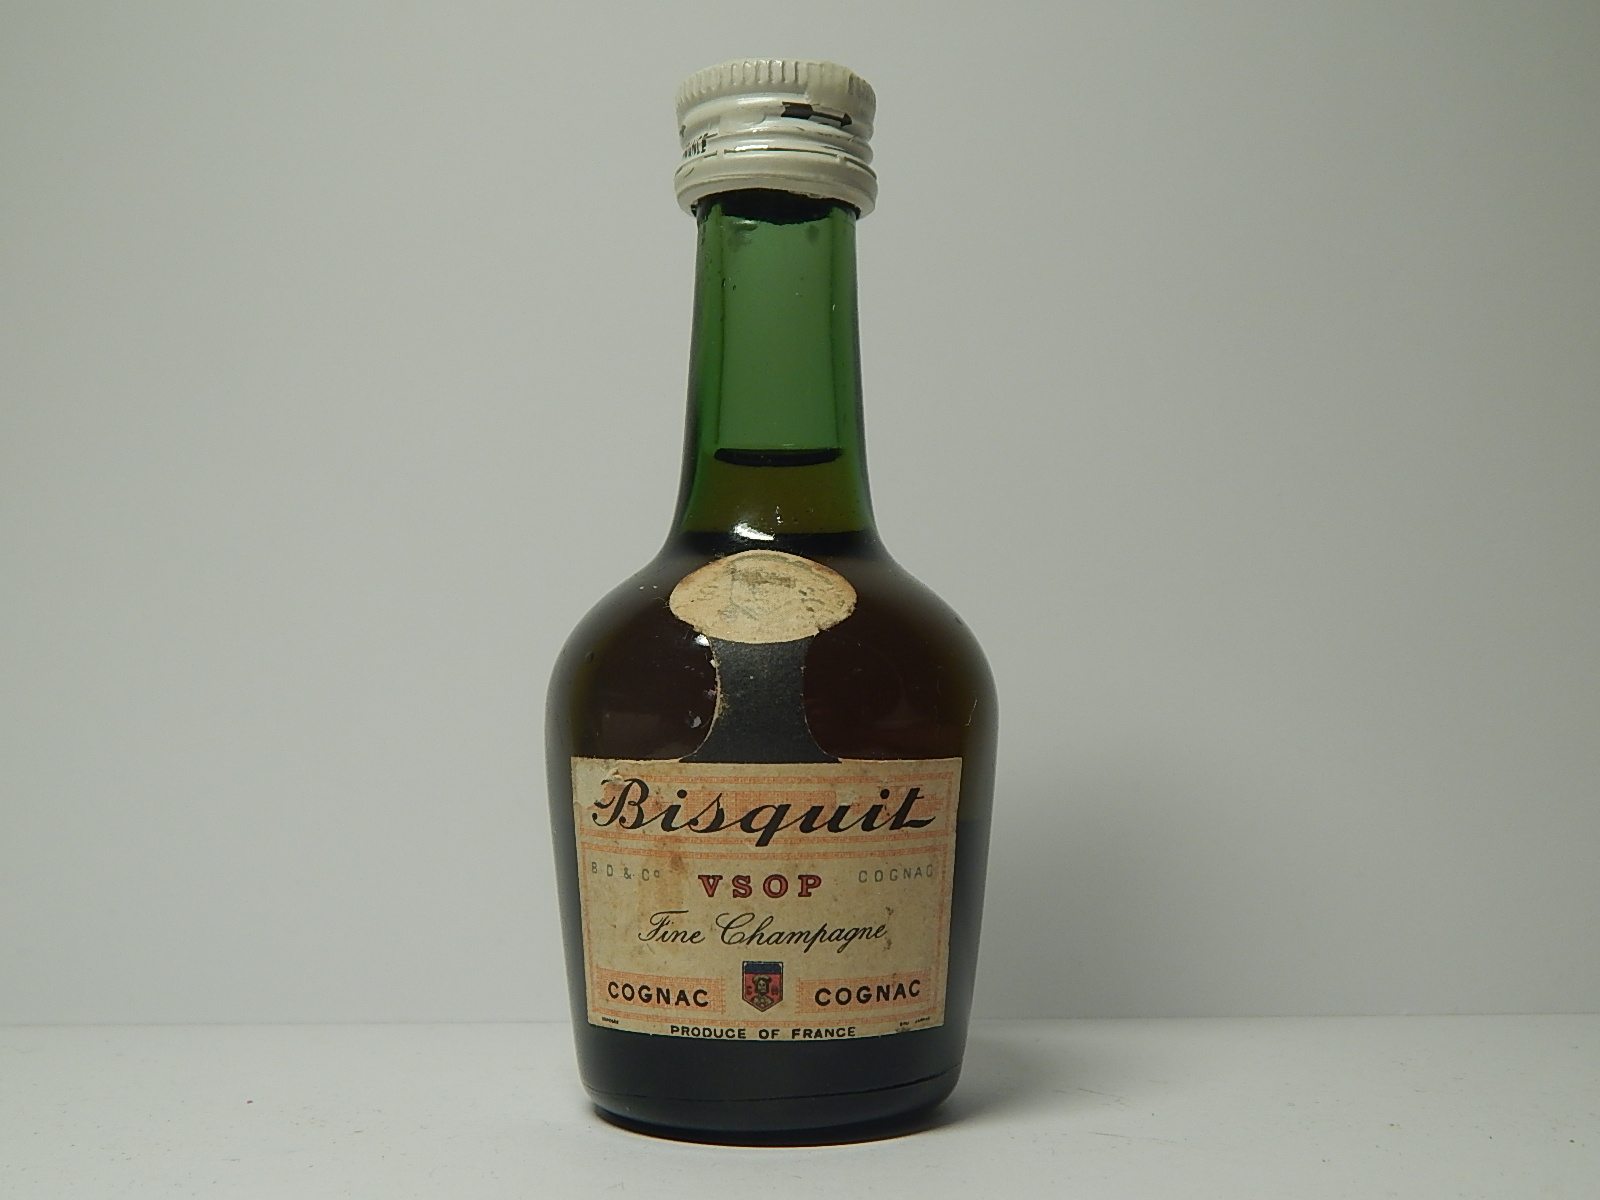 BISQUIT V.S.O.P. Fine Champagne Cognac